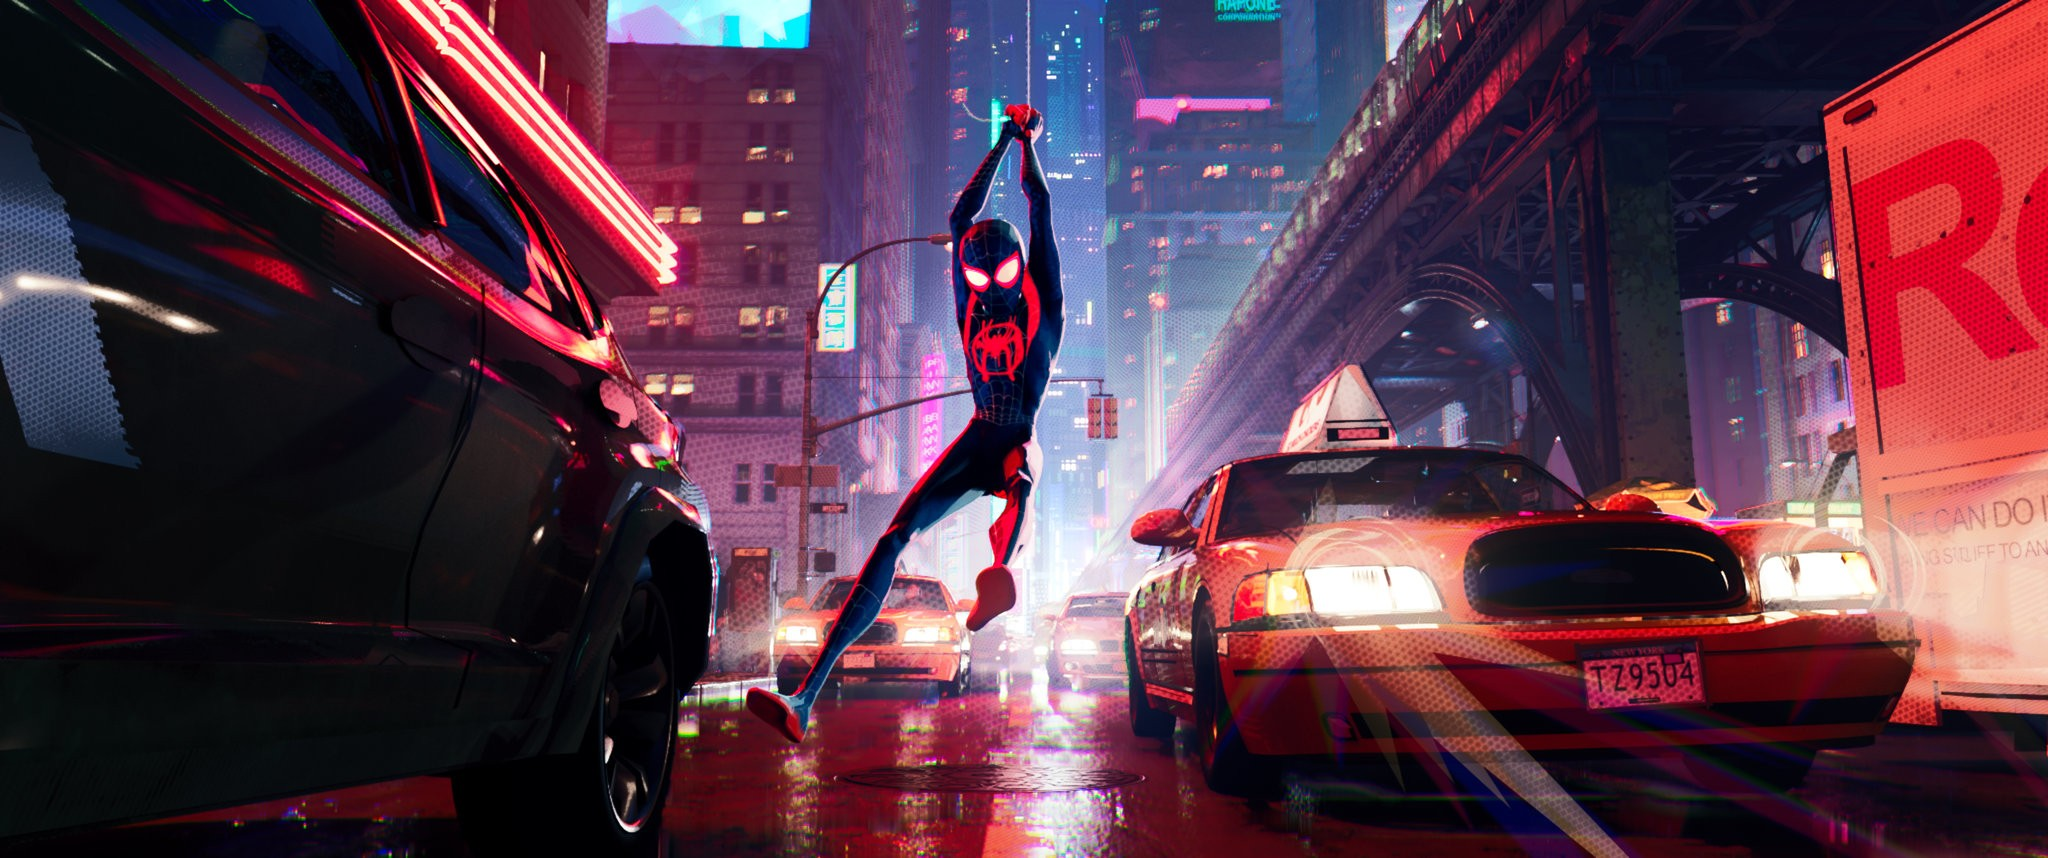 merlin_147855450_8c41a48a-da8c-4868-addb-67c763bdd5f1-superJumbo L'incredibile arte dietro Spider-Man into the Spider-Verse